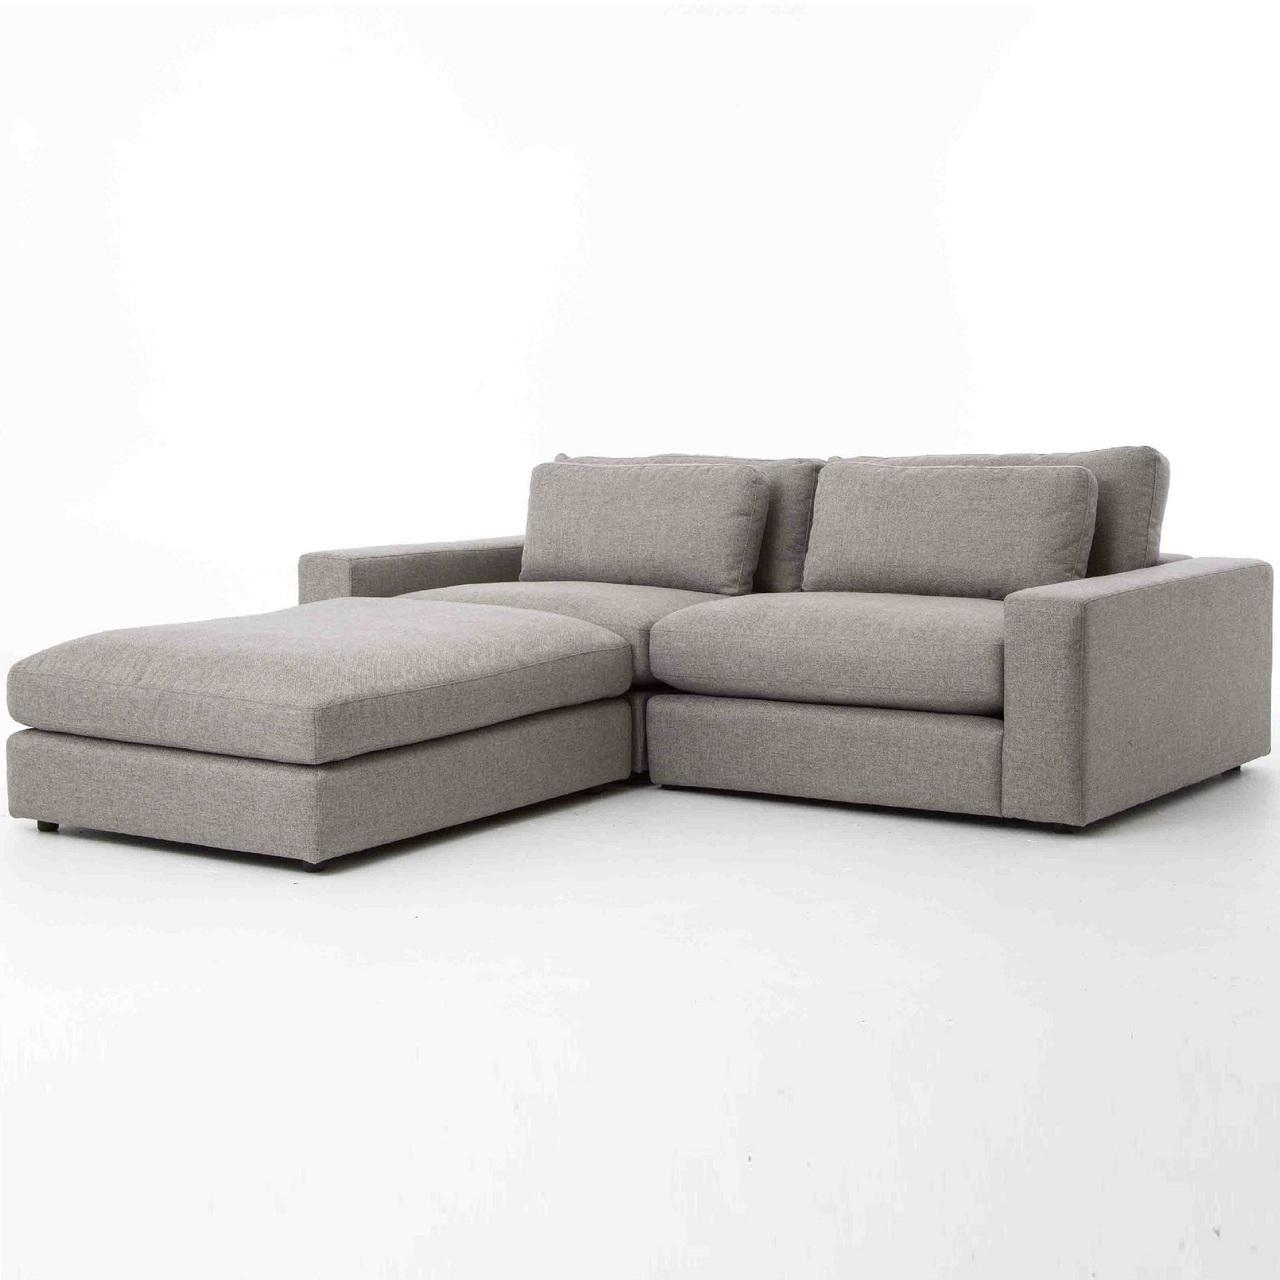 Sofas Center : Breathtaking Small Sectional Sofas Photo Concept Intended For Modern Small Sectional Sofas (Image 20 of 20)